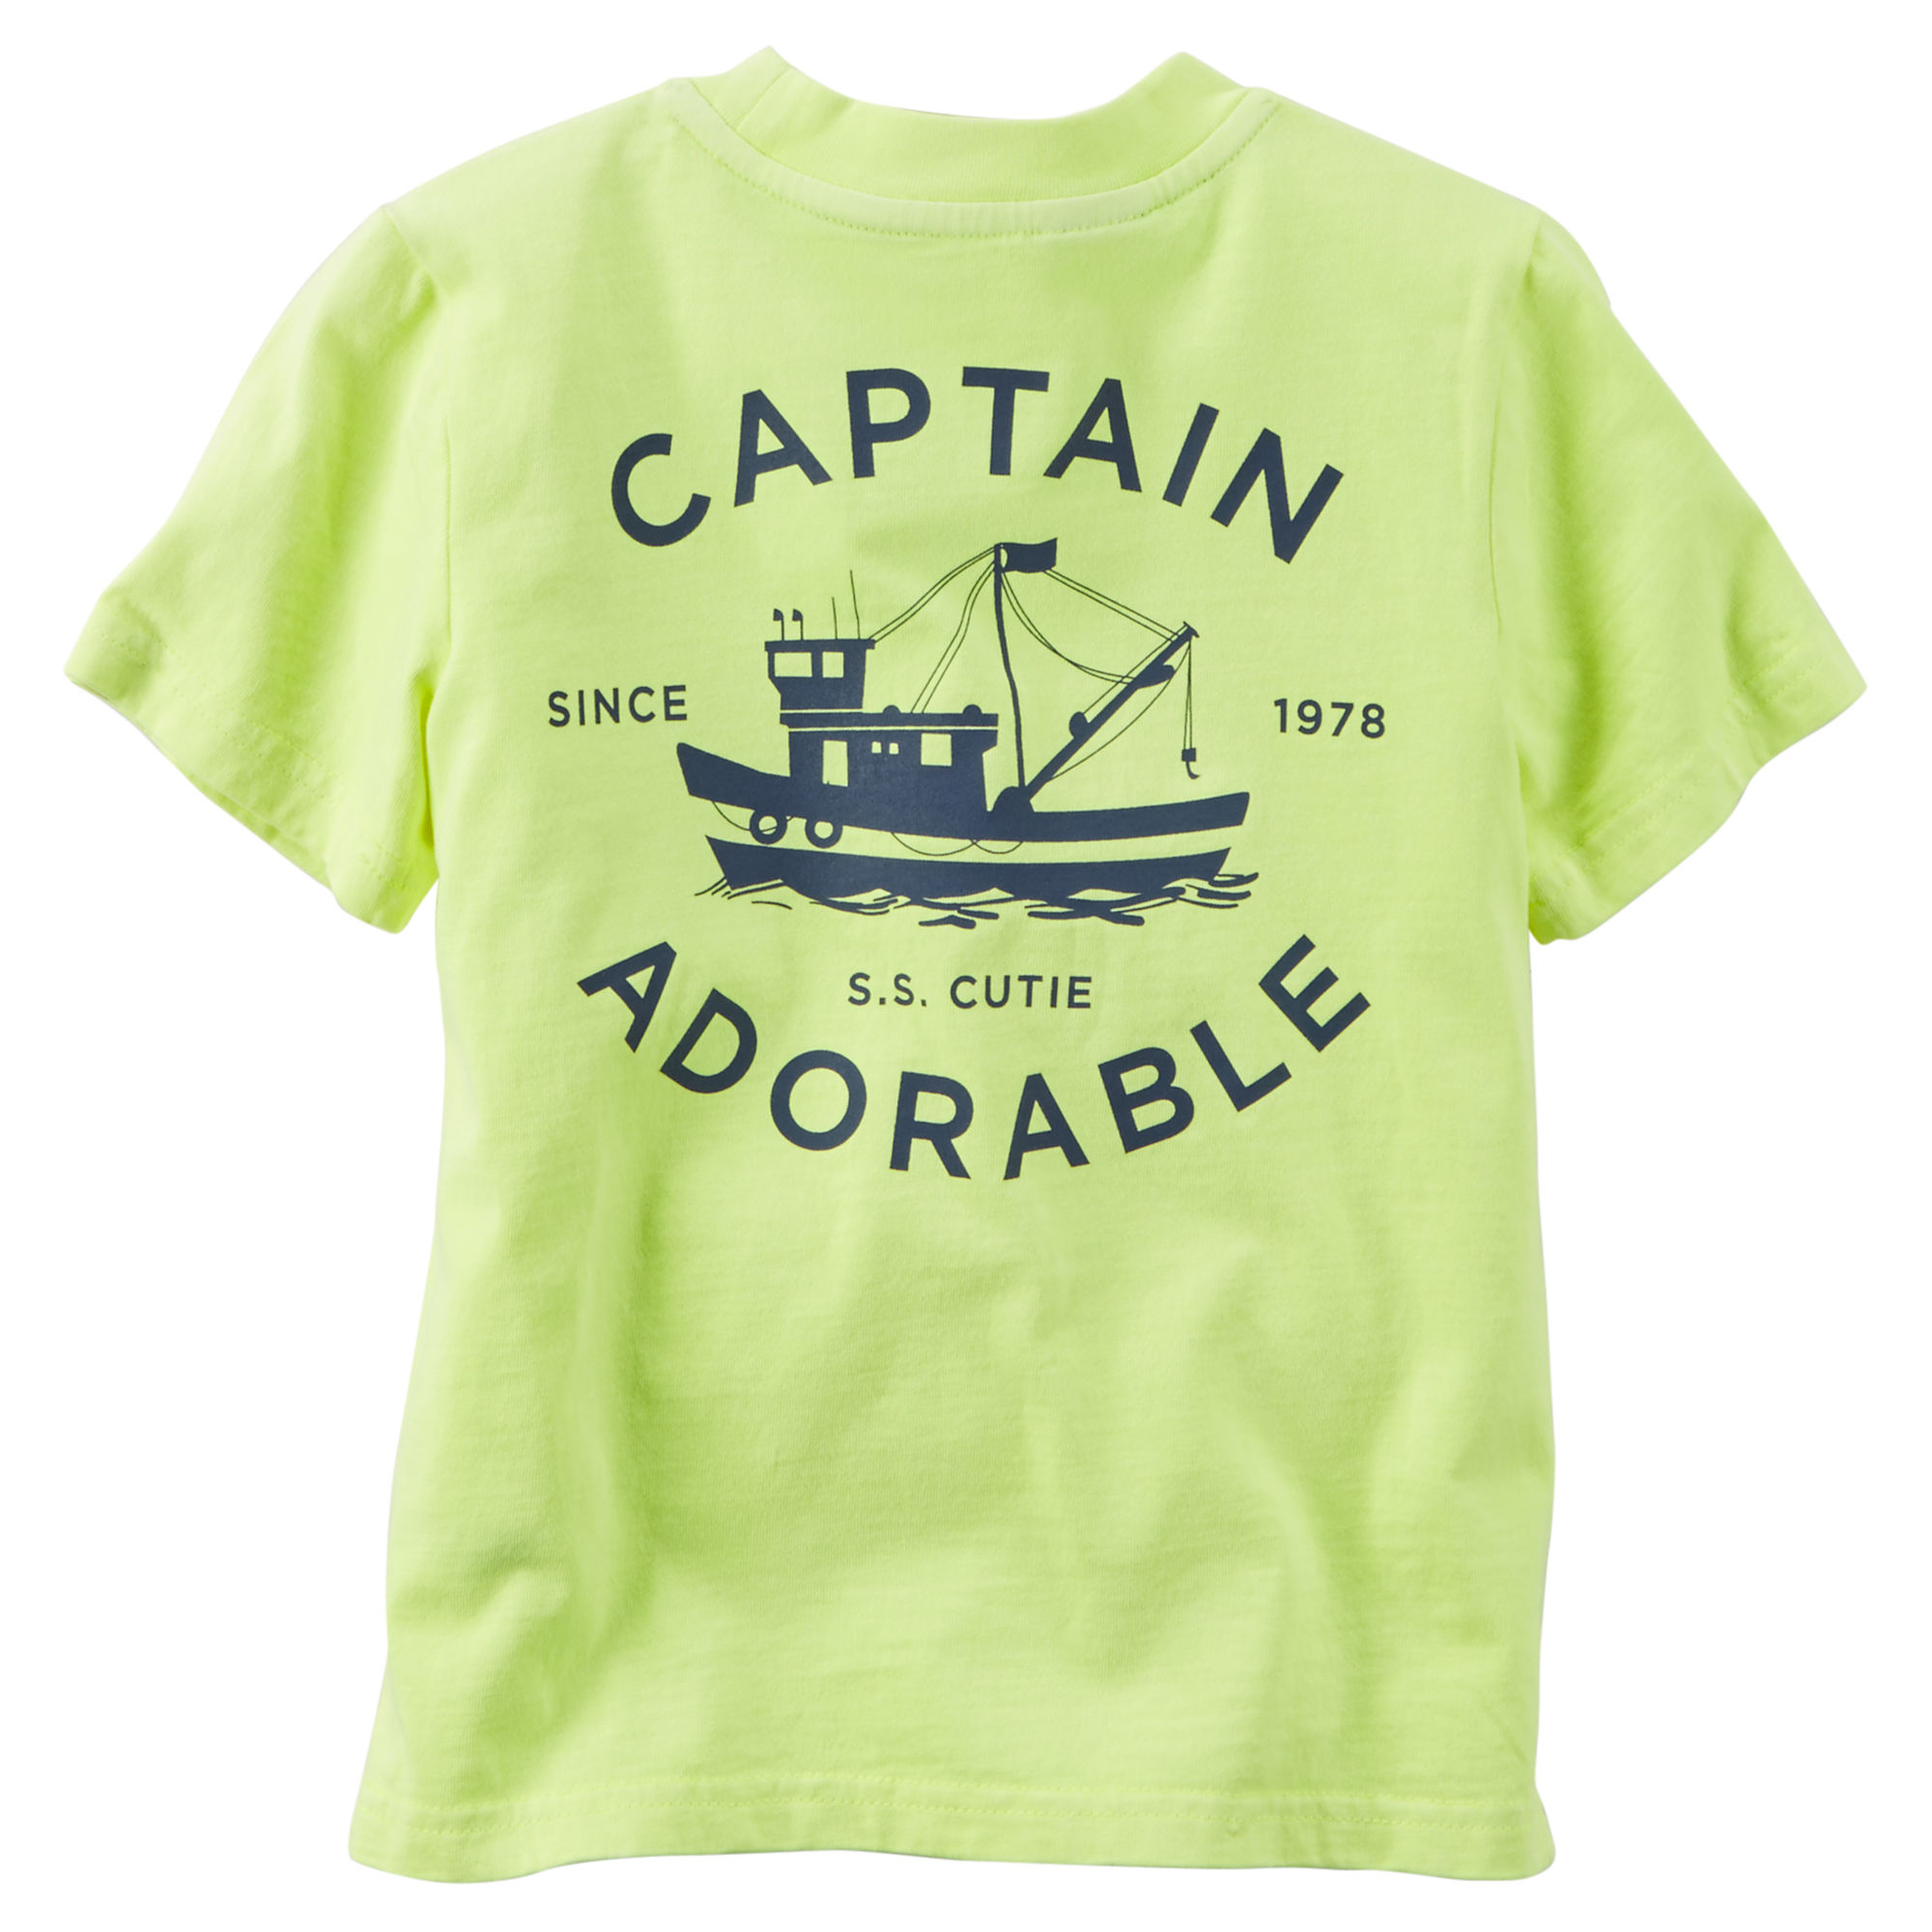 Front-and-Back Pocket Tee (Captain Adorable) - $7.00